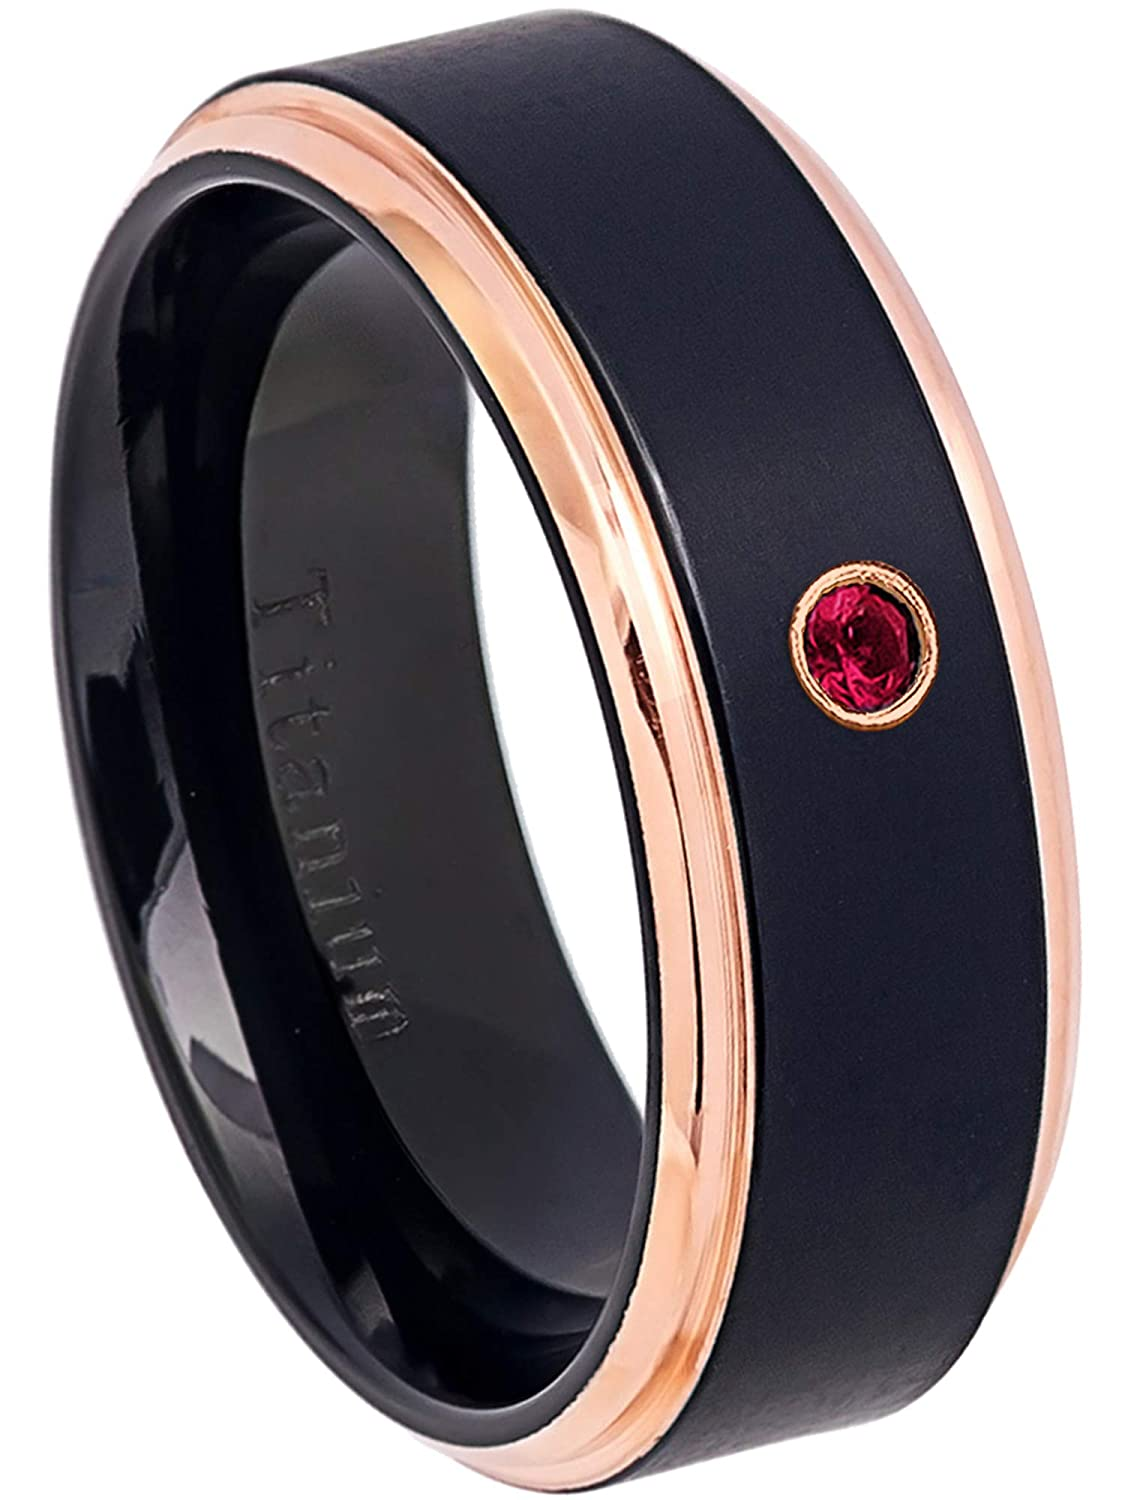 8MM Black Ion Plated /& Rose Gold Plated Stepped Edge Comfort Fit Wedding Band July Birthstone Ring 0.07ct Ruby Titanium Ring